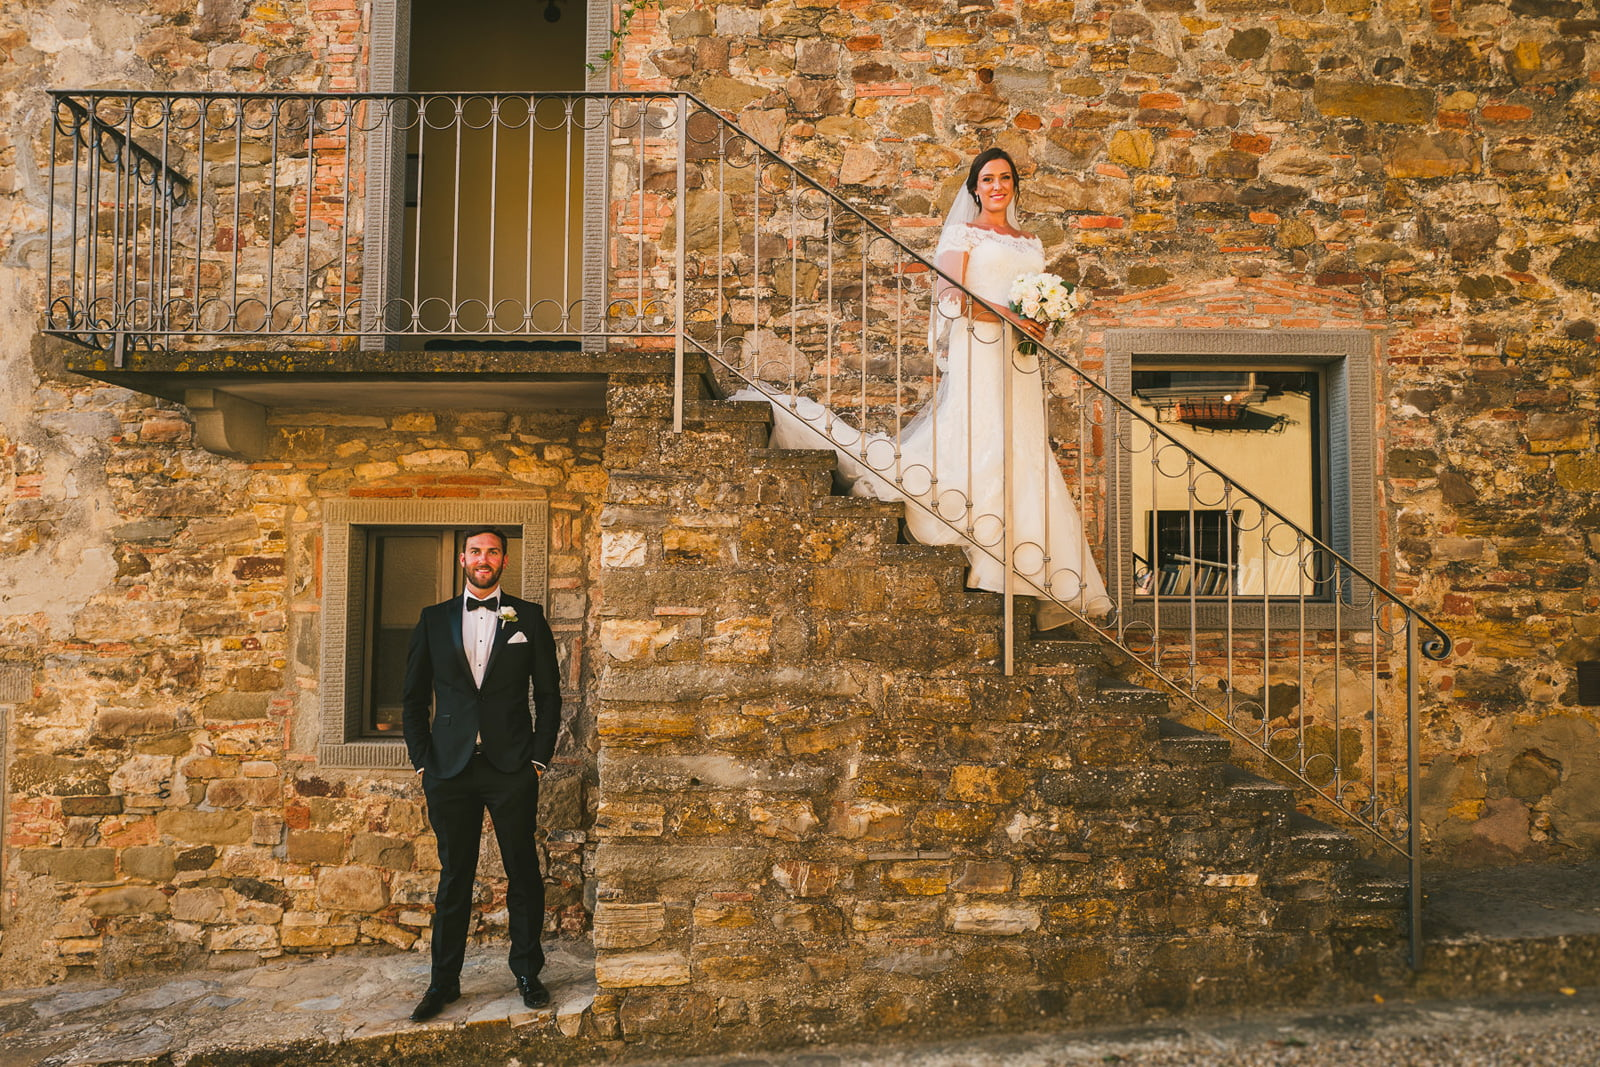 F+P Wedding at Montelucci Country Resort by Federico Pannacci 124